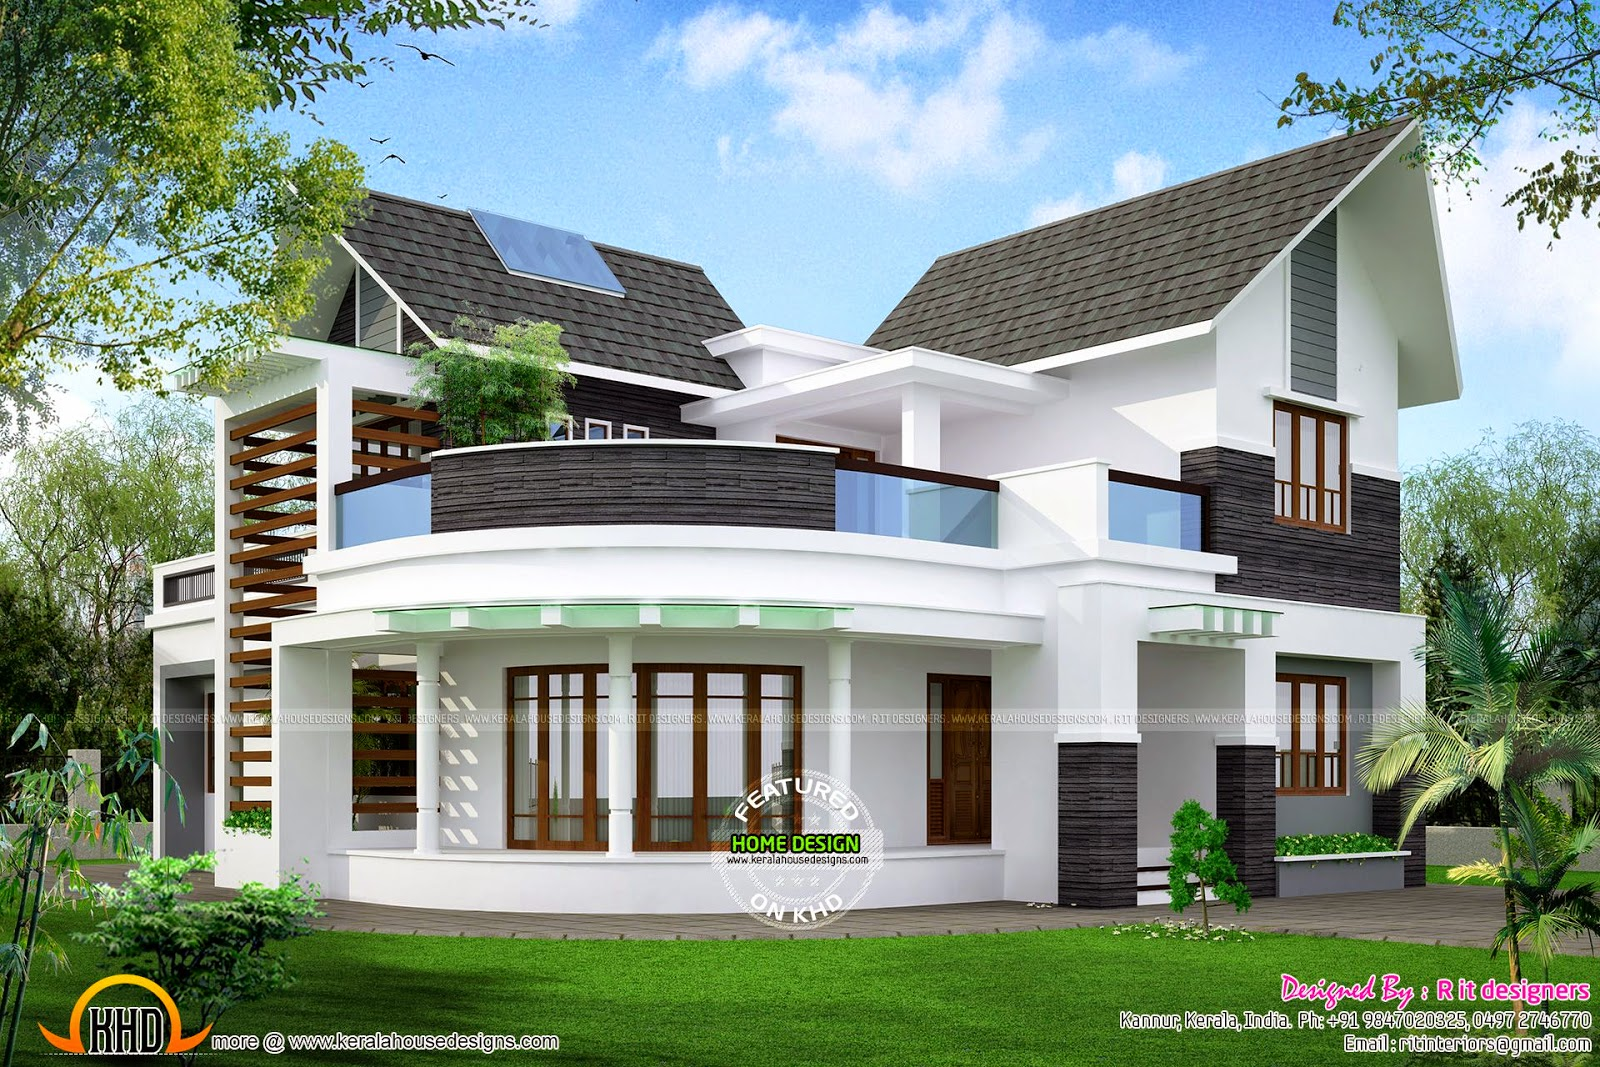 Modern unique 3 bedroom house design ground floor2 for Modern 3 bedroom house design